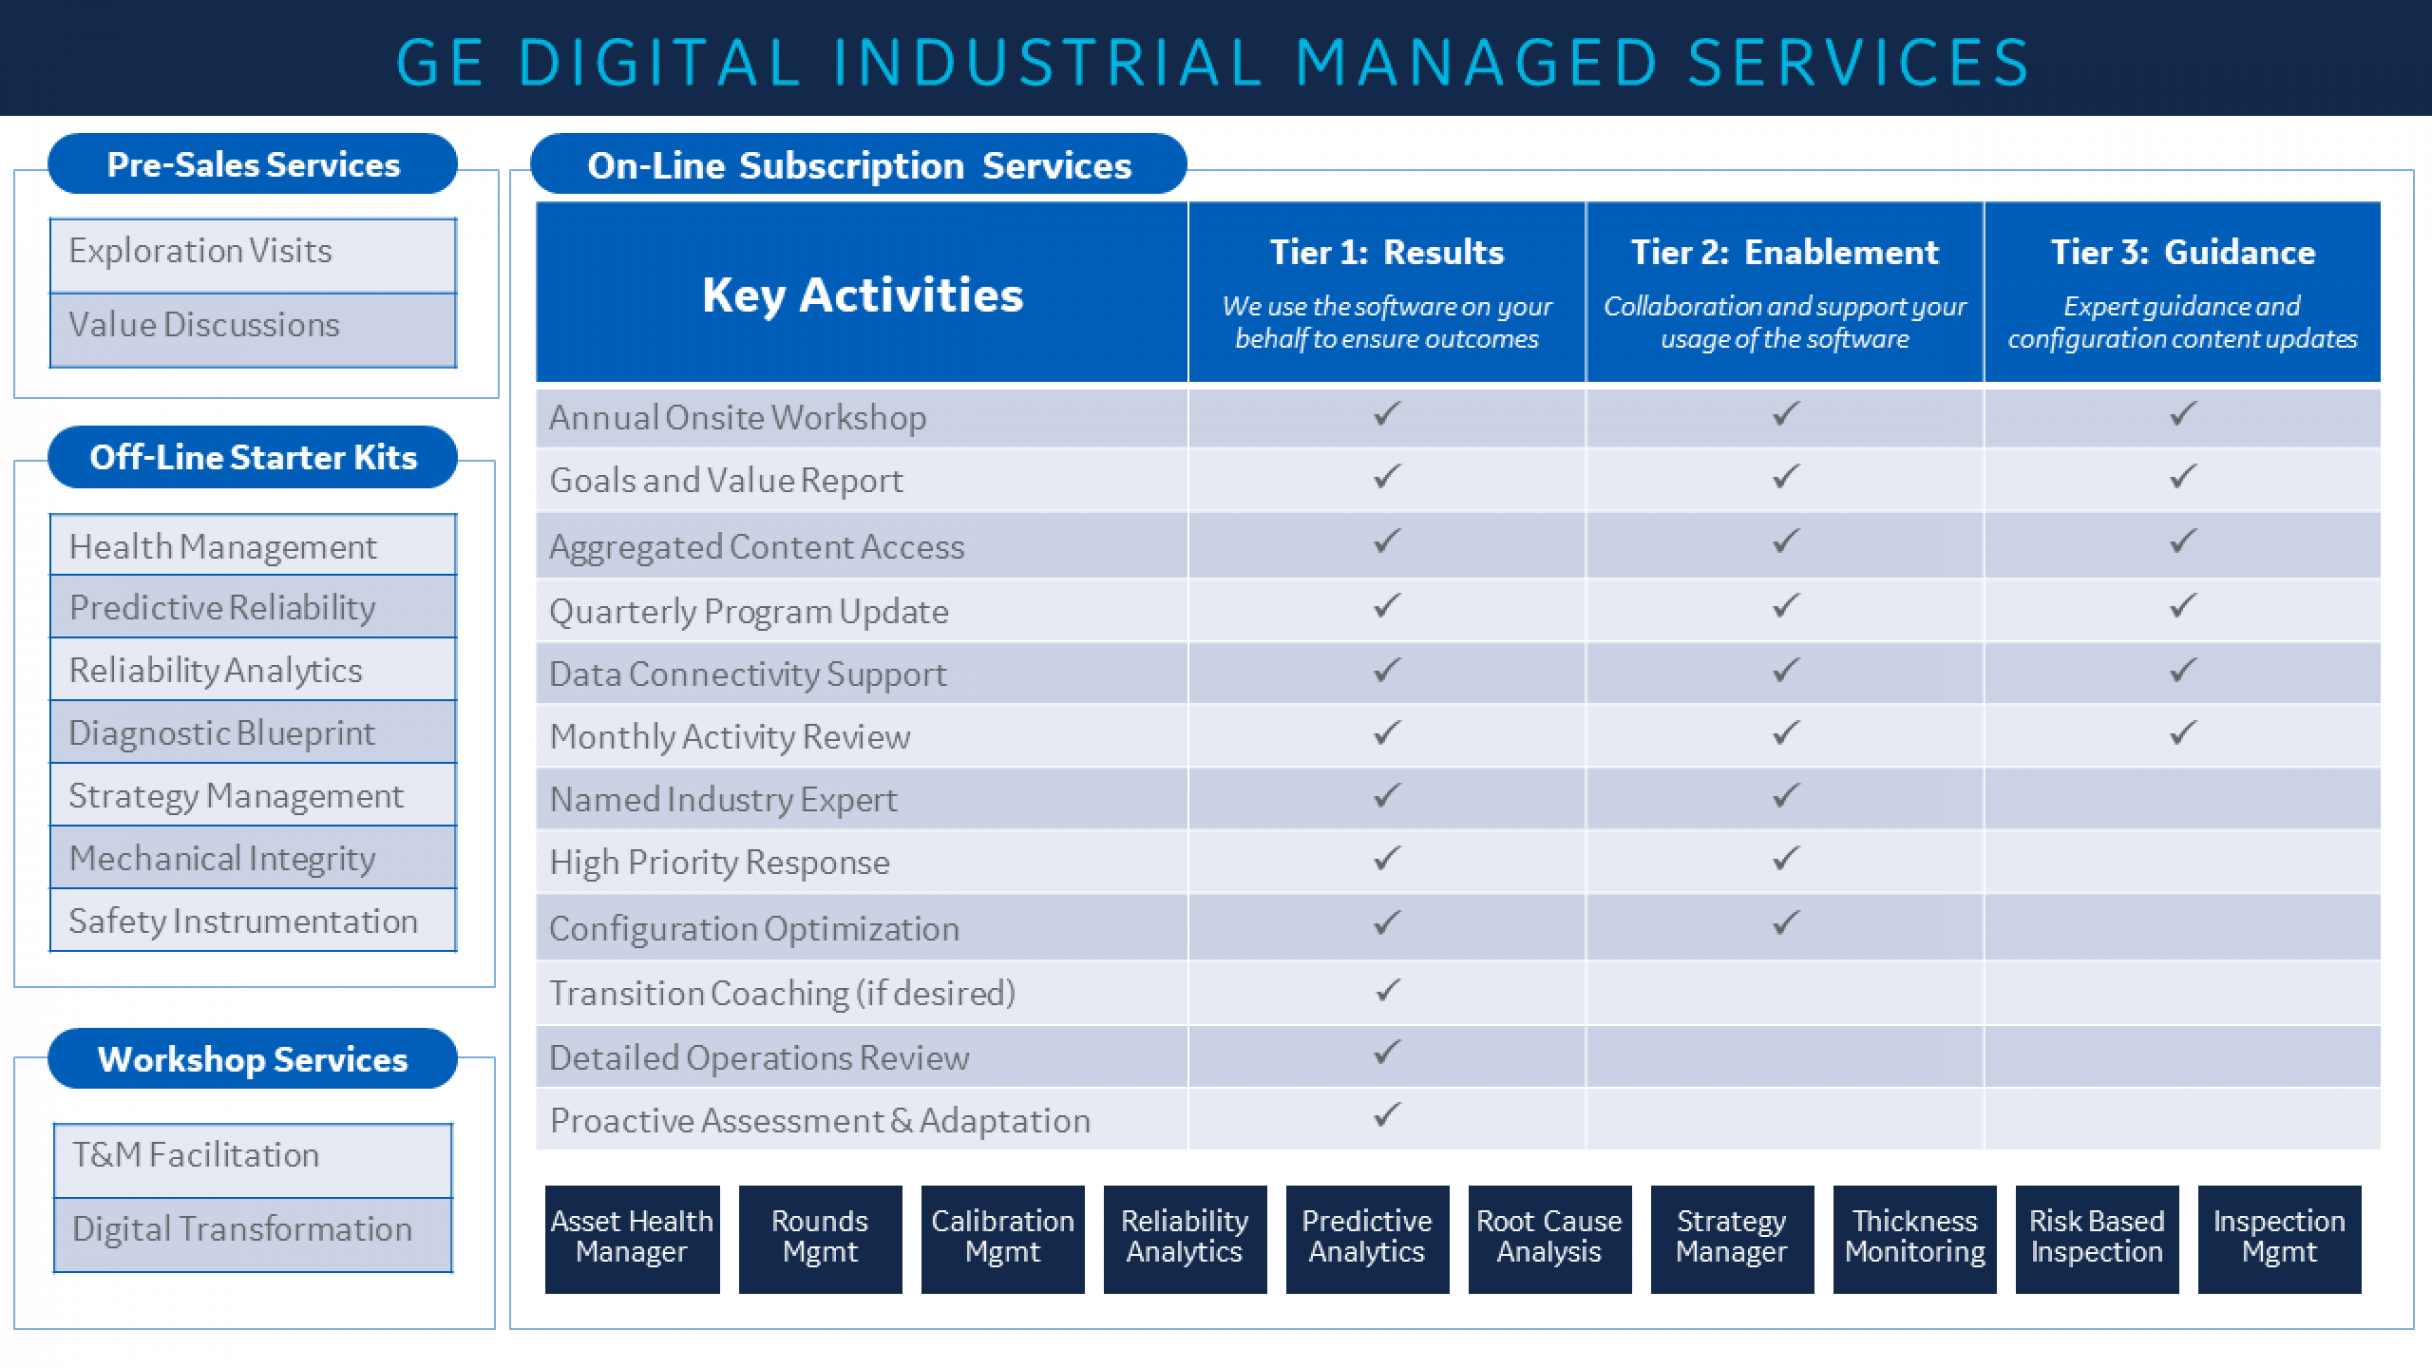 GE Digital Industrial Managed Services Offerings